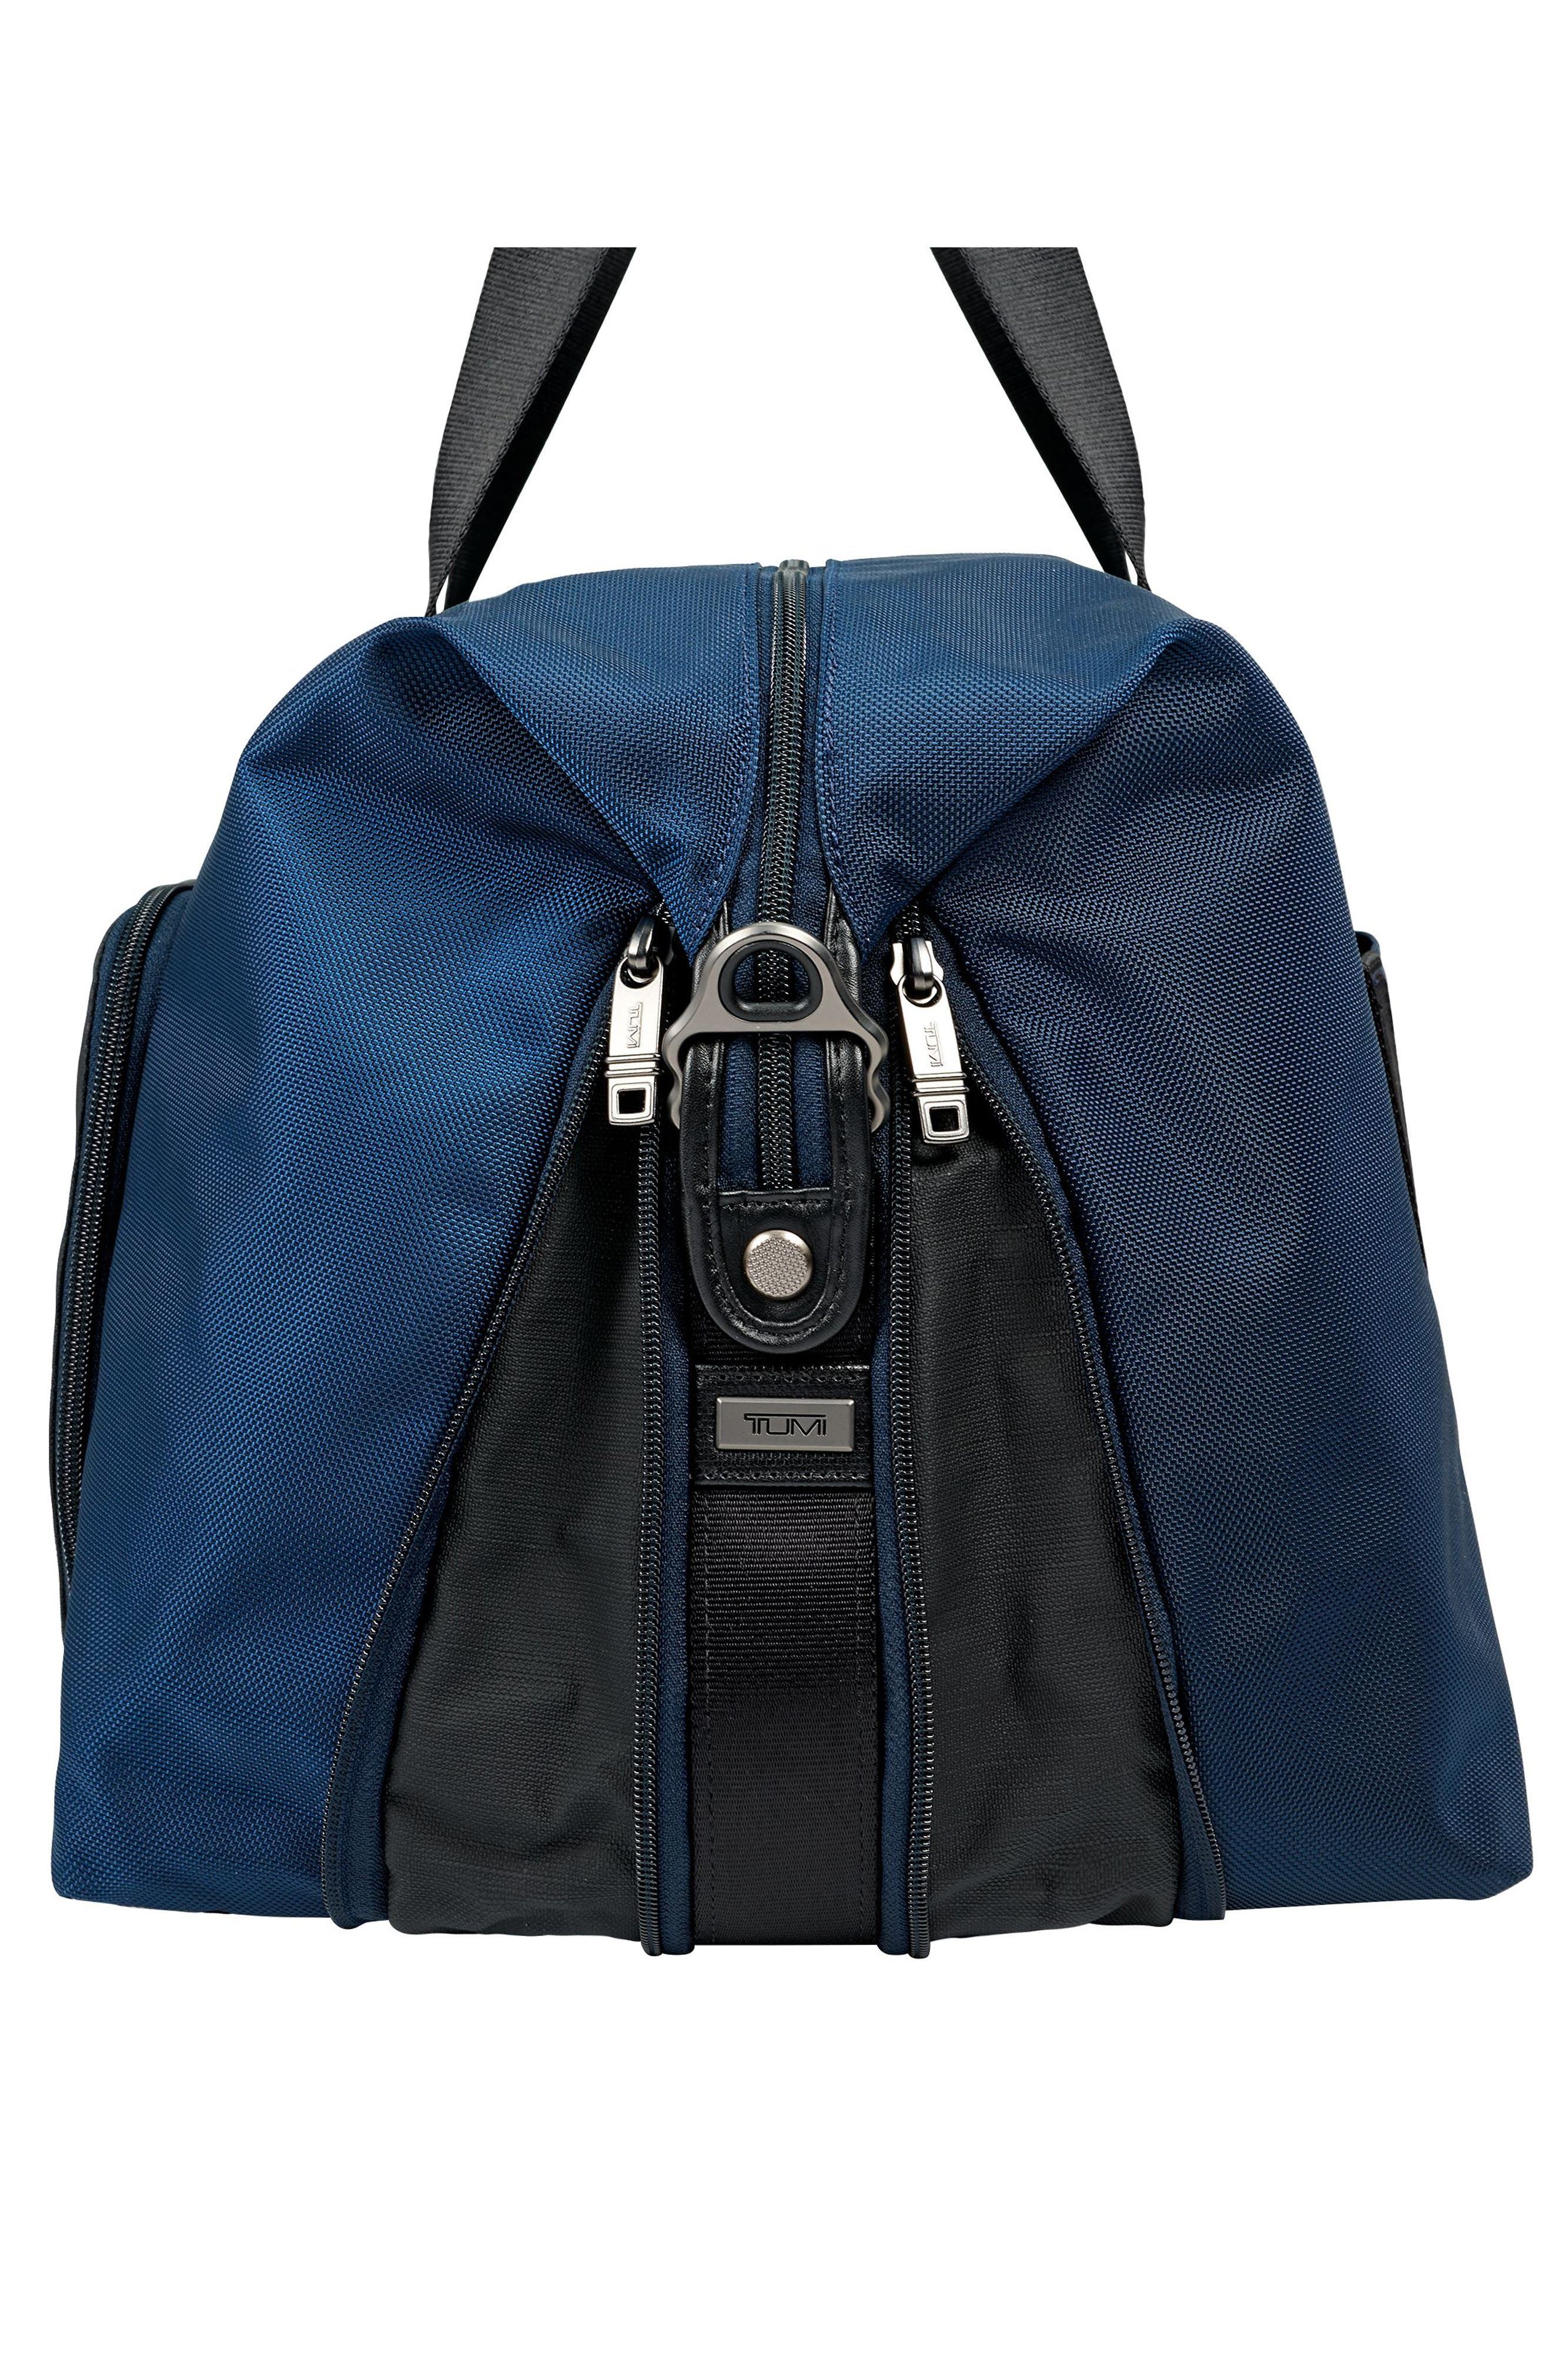 Alpha 2 Expandable Travel Satchel,                             Alternate thumbnail 5, color,                             421